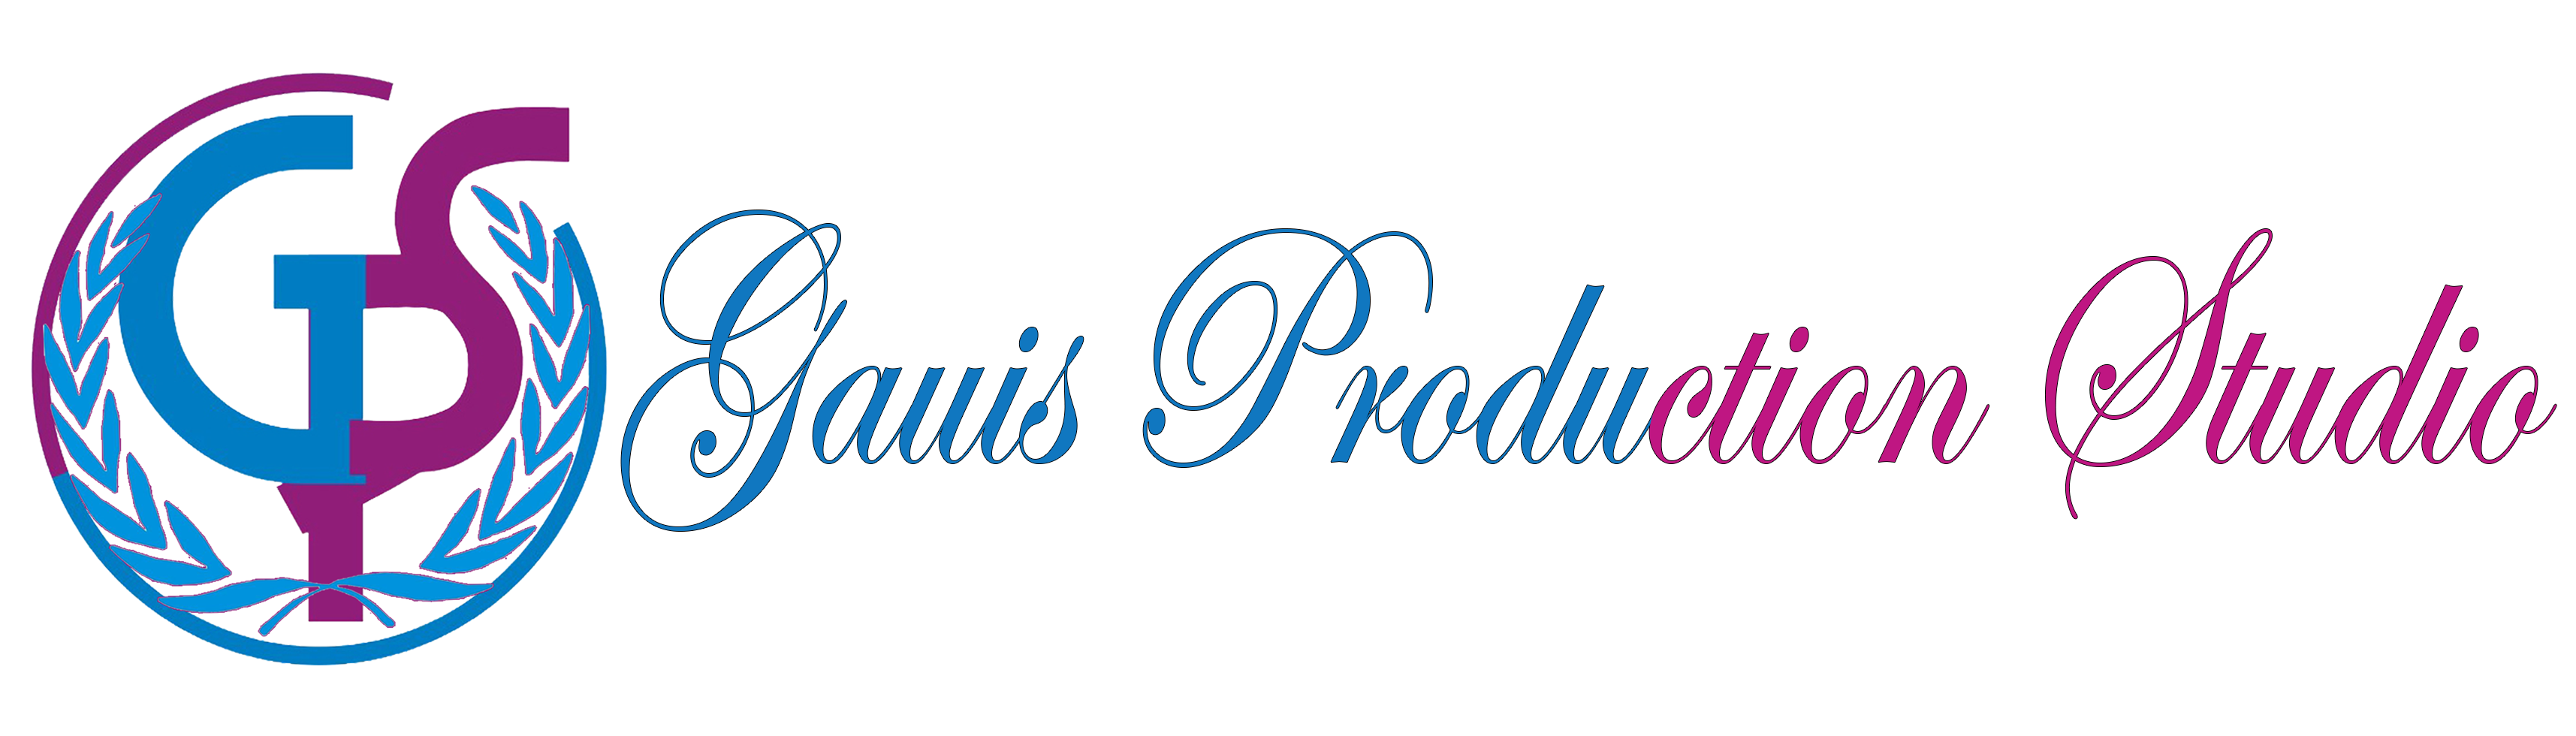 Best Photography and Printing services in Gainesville and Metro Atlanta GA - Gauis Photo Studio